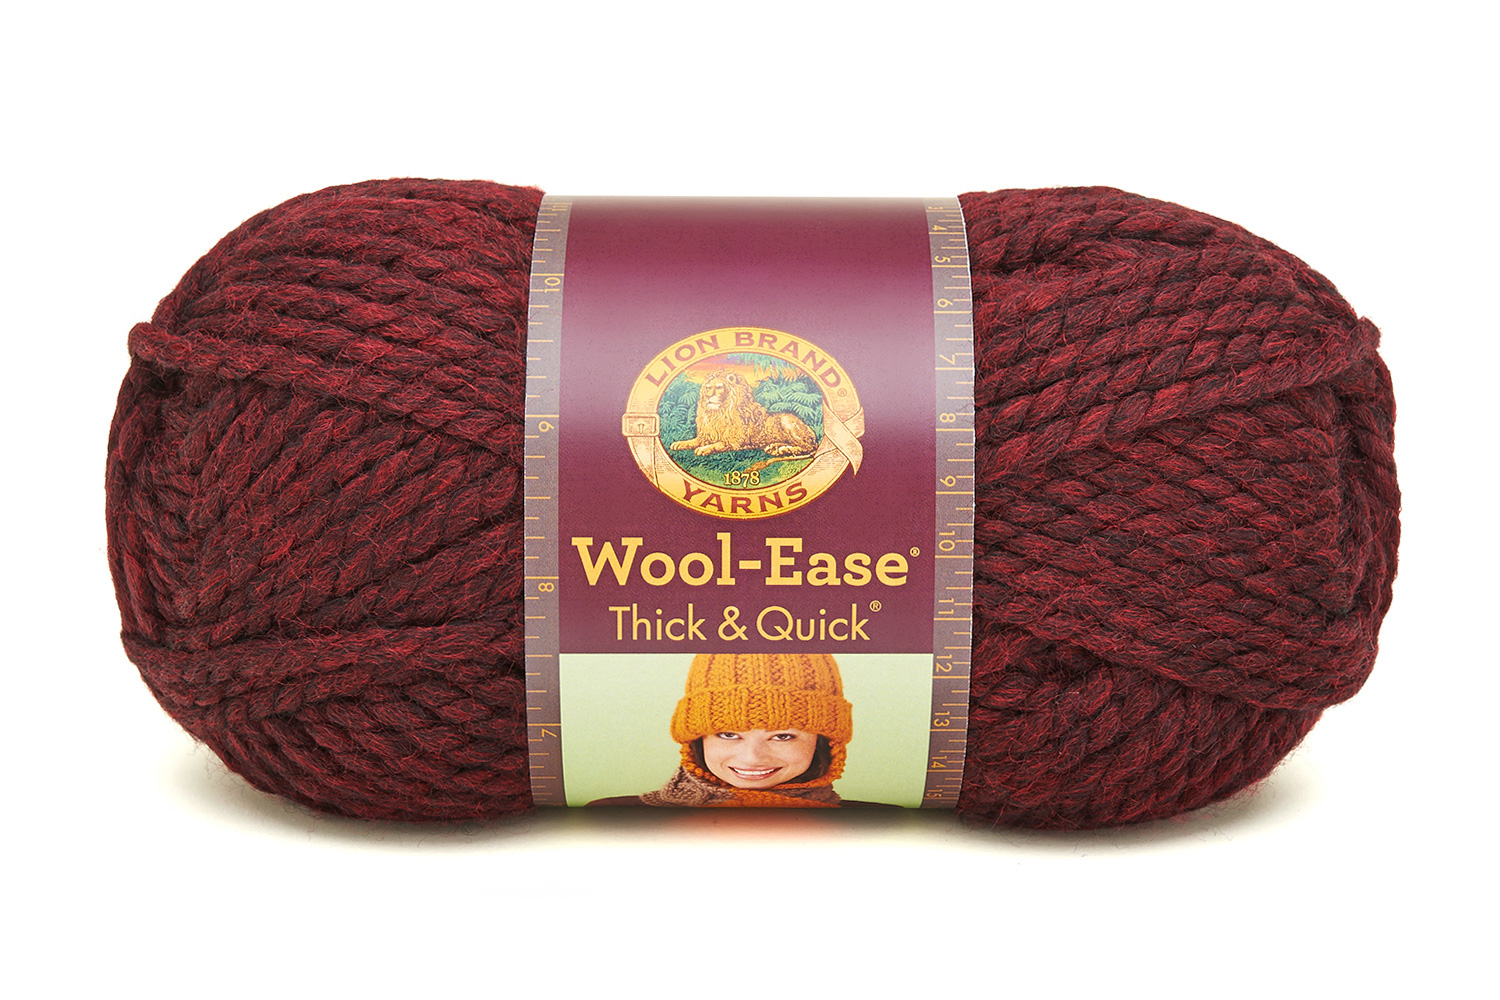 Lion Brand Yarn Wool-Ease Thick and Quick Claret 640-143 Classic Wool Yarn